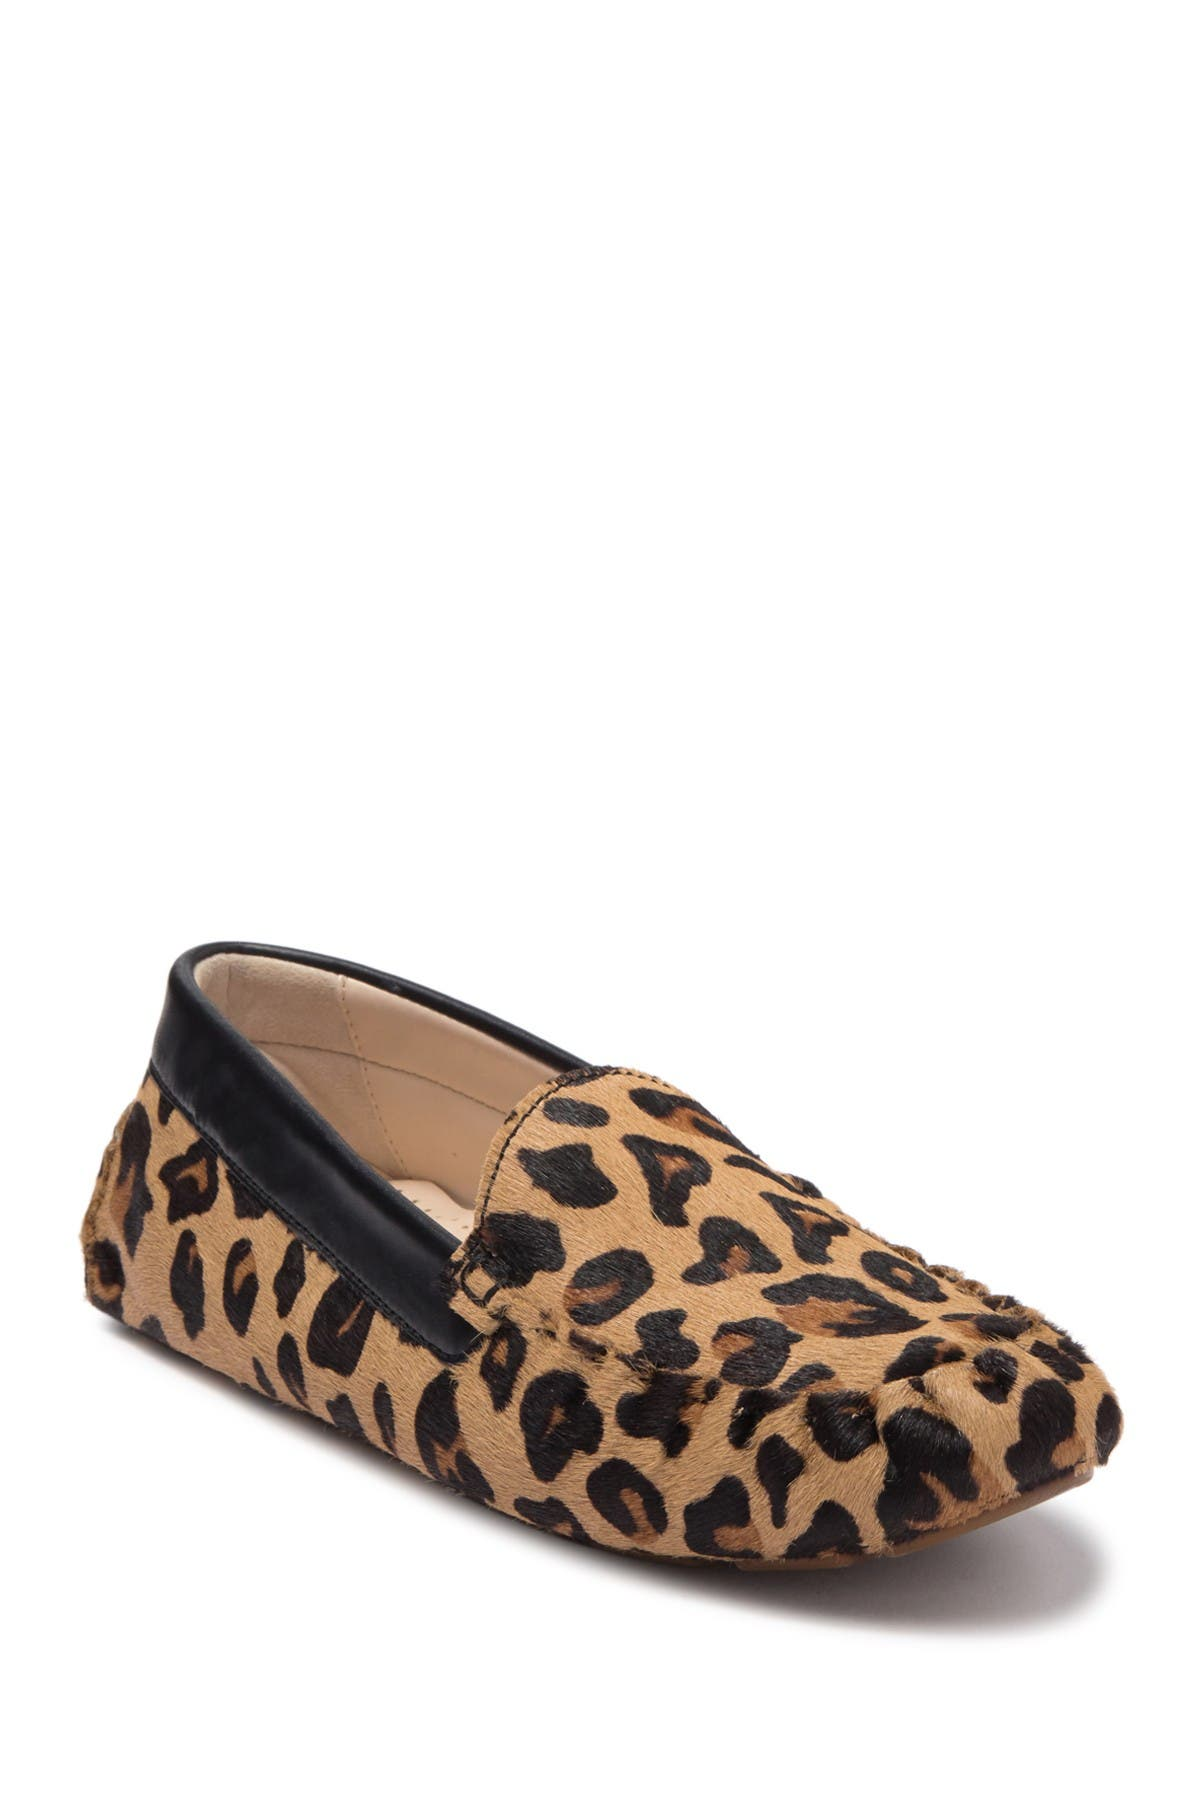 Image of Cole Haan Evelyn Genuine Calf Hair Driving Loafer